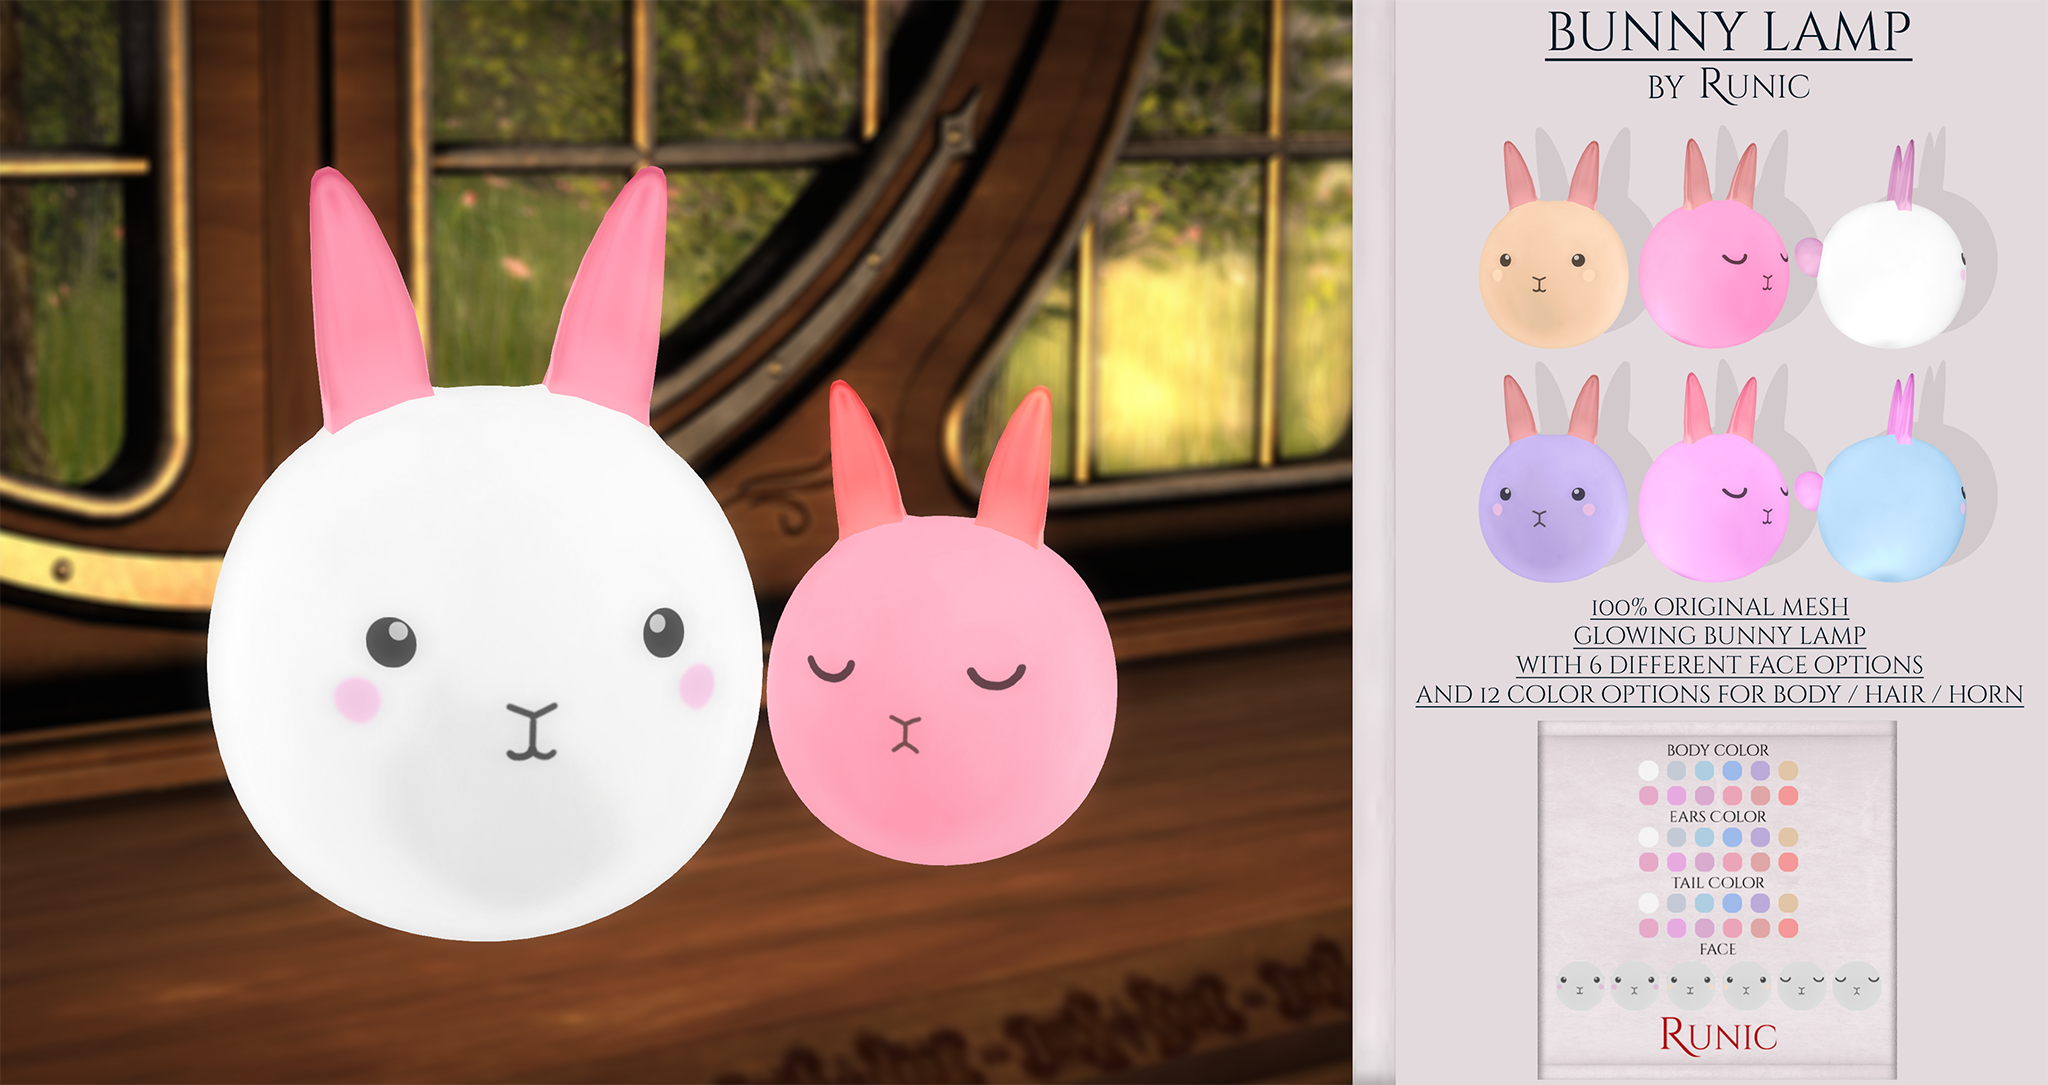 Runic - Bunny Lamp.png